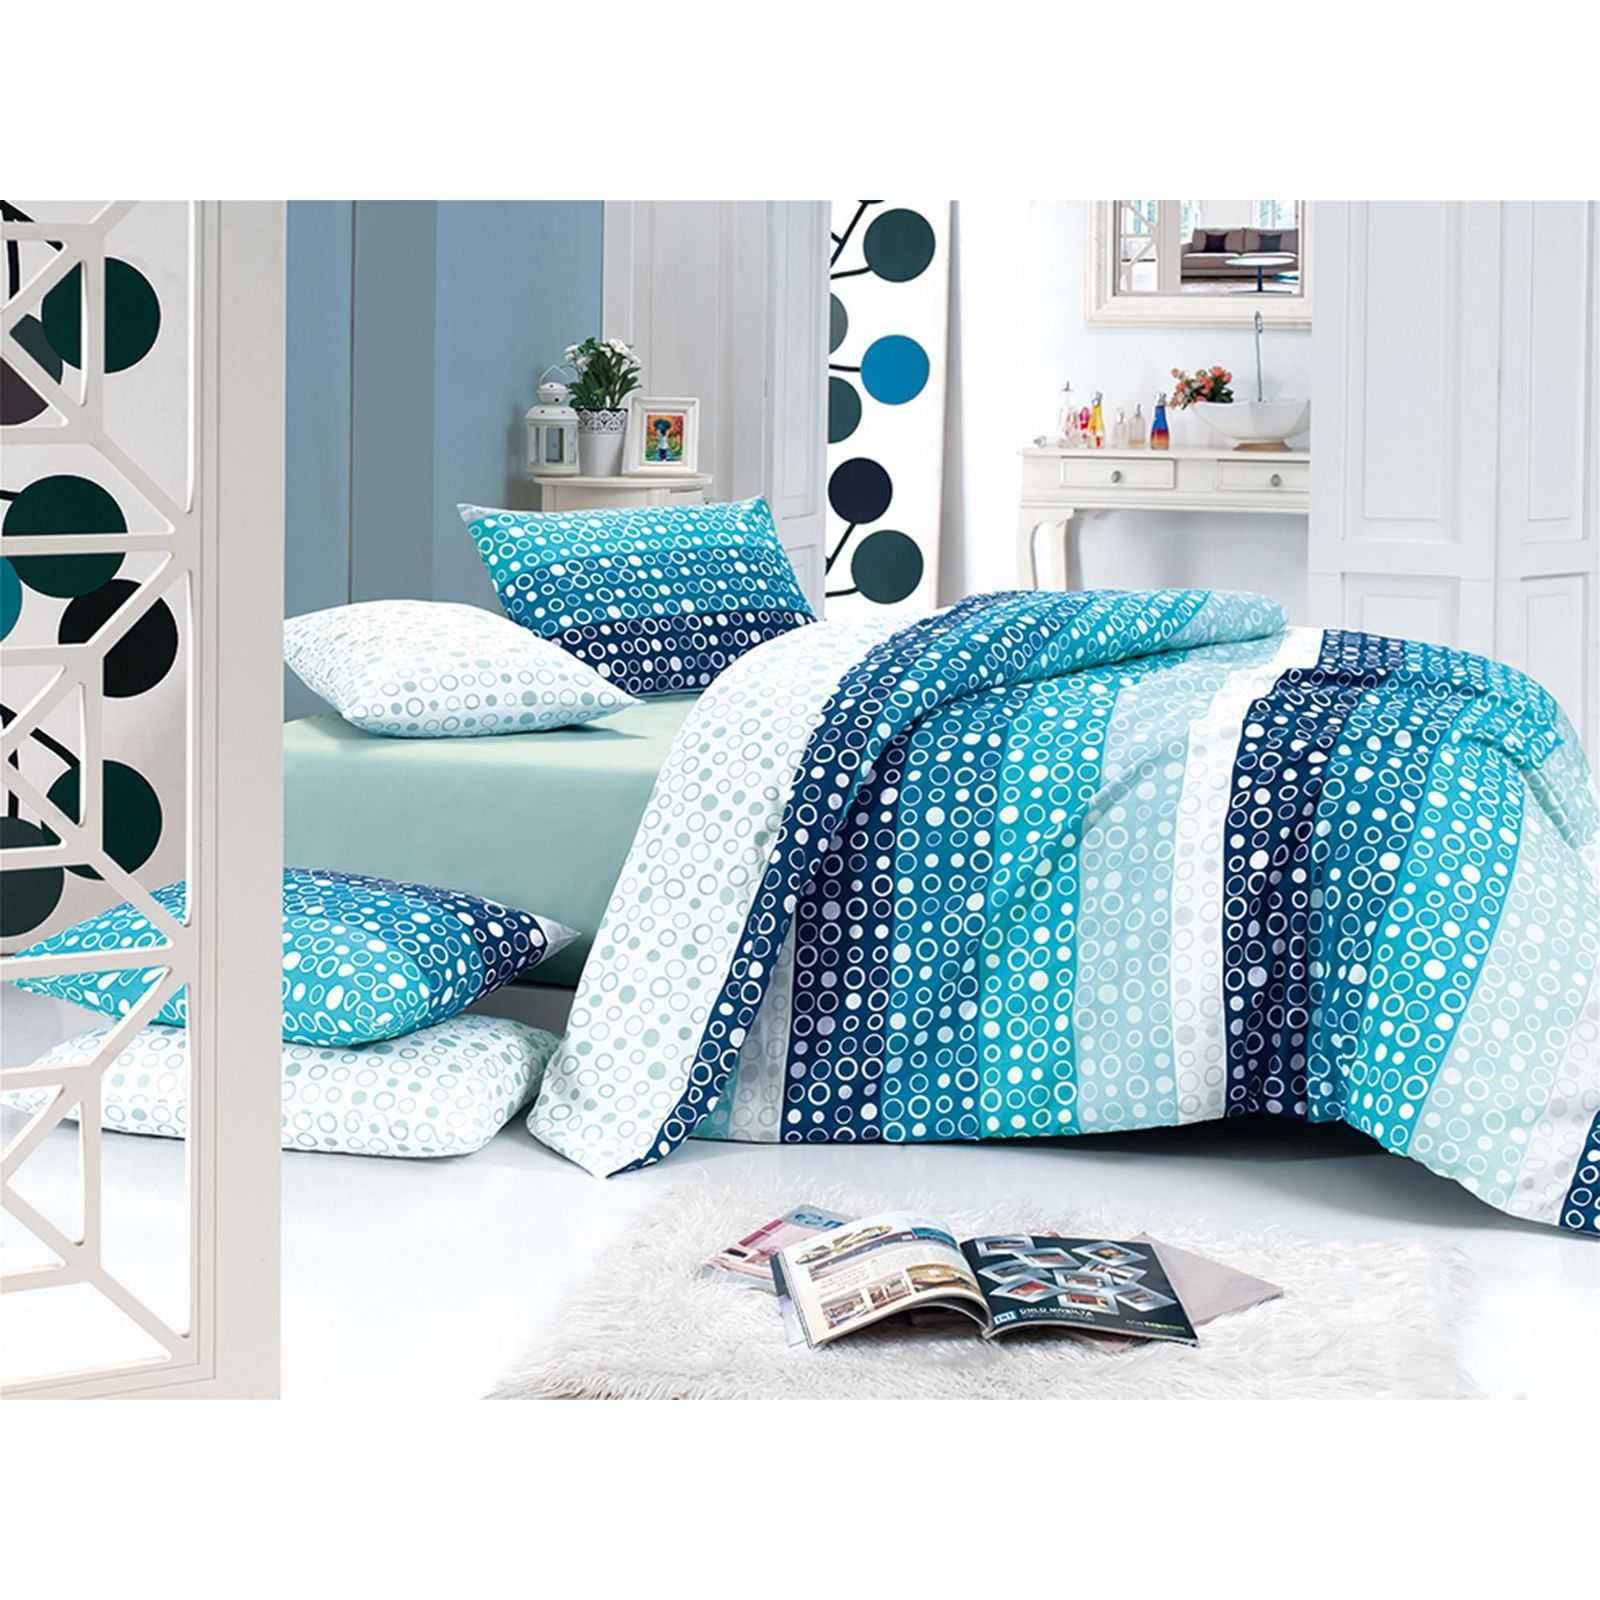 majoli parure de lit turquoise brandalley. Black Bedroom Furniture Sets. Home Design Ideas